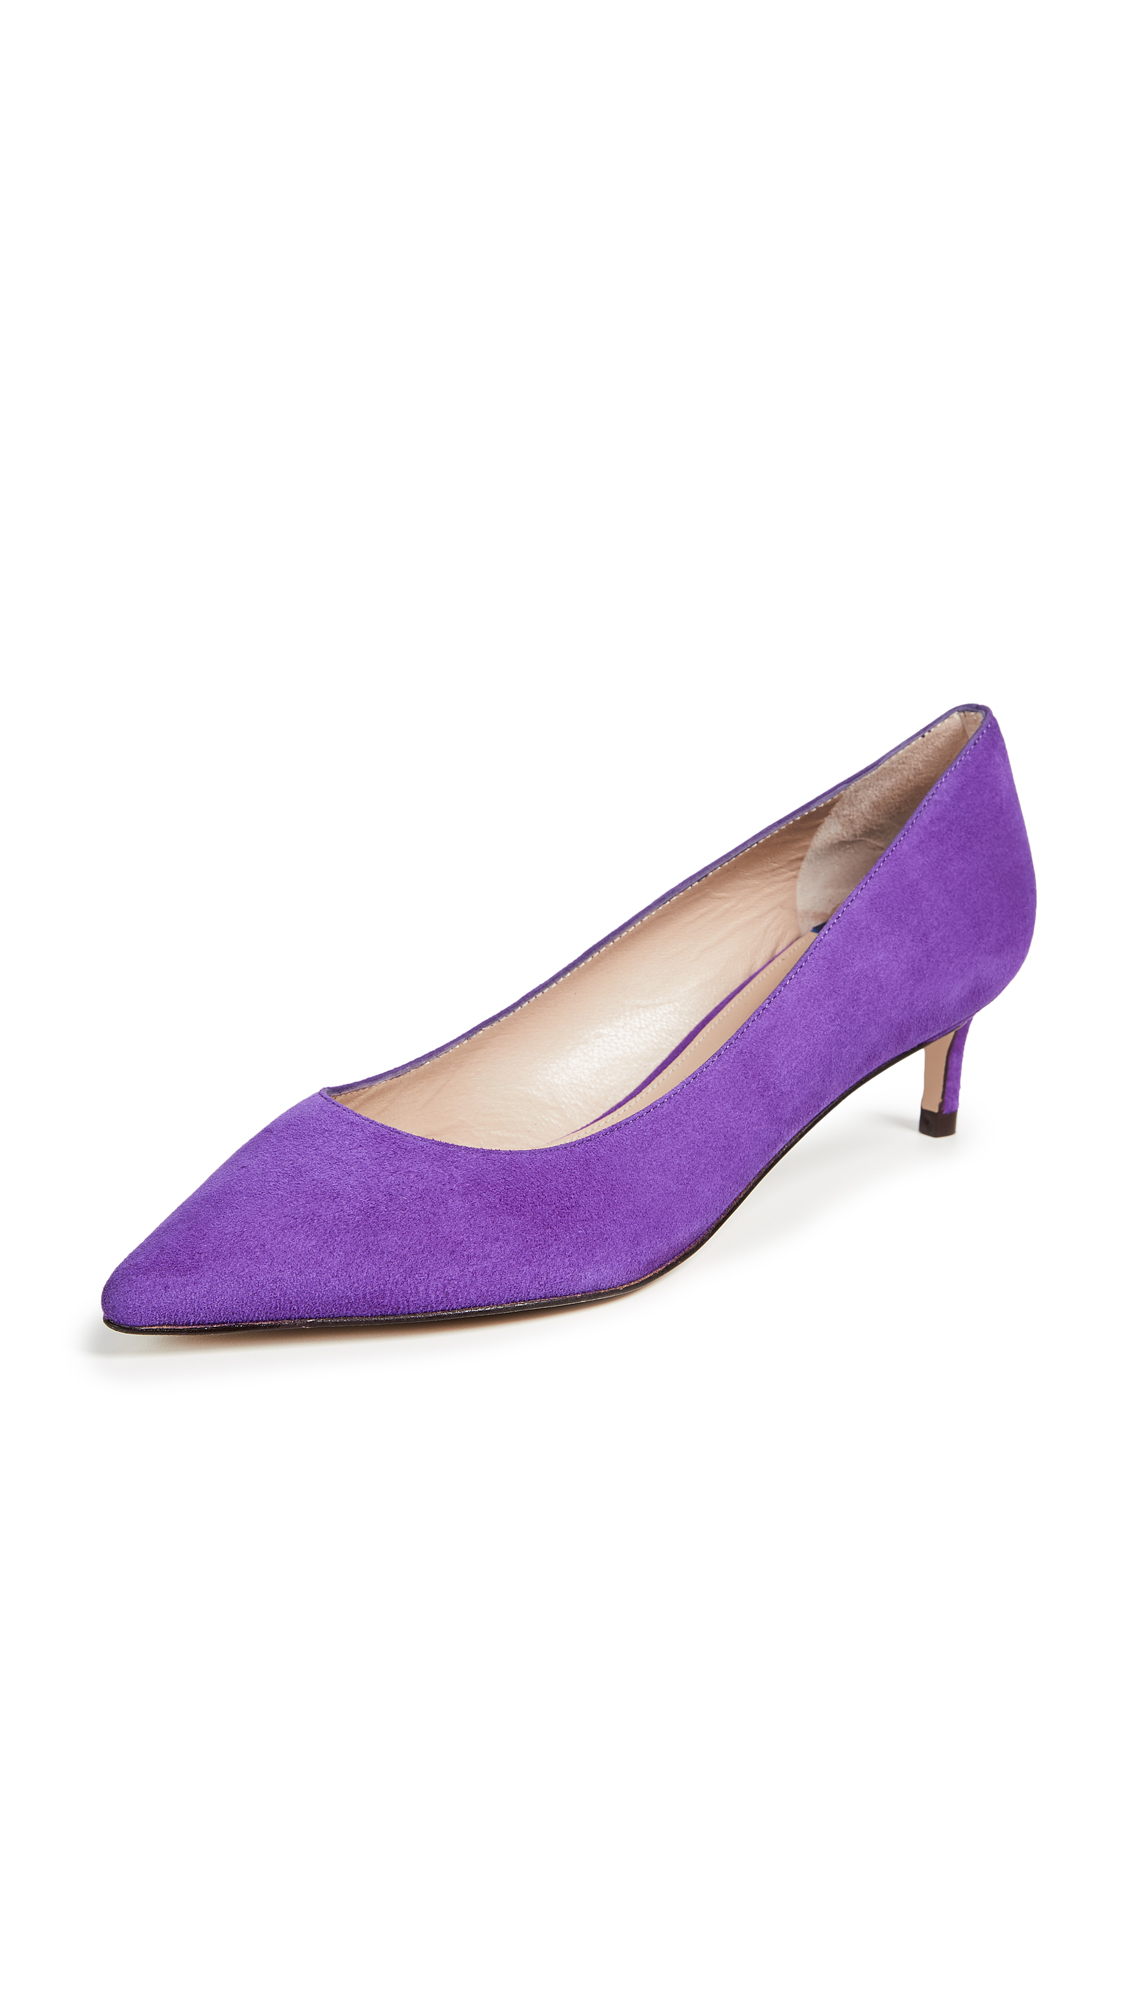 Stuart Weitzman Leigh 45mm Pumps - Hyacinth